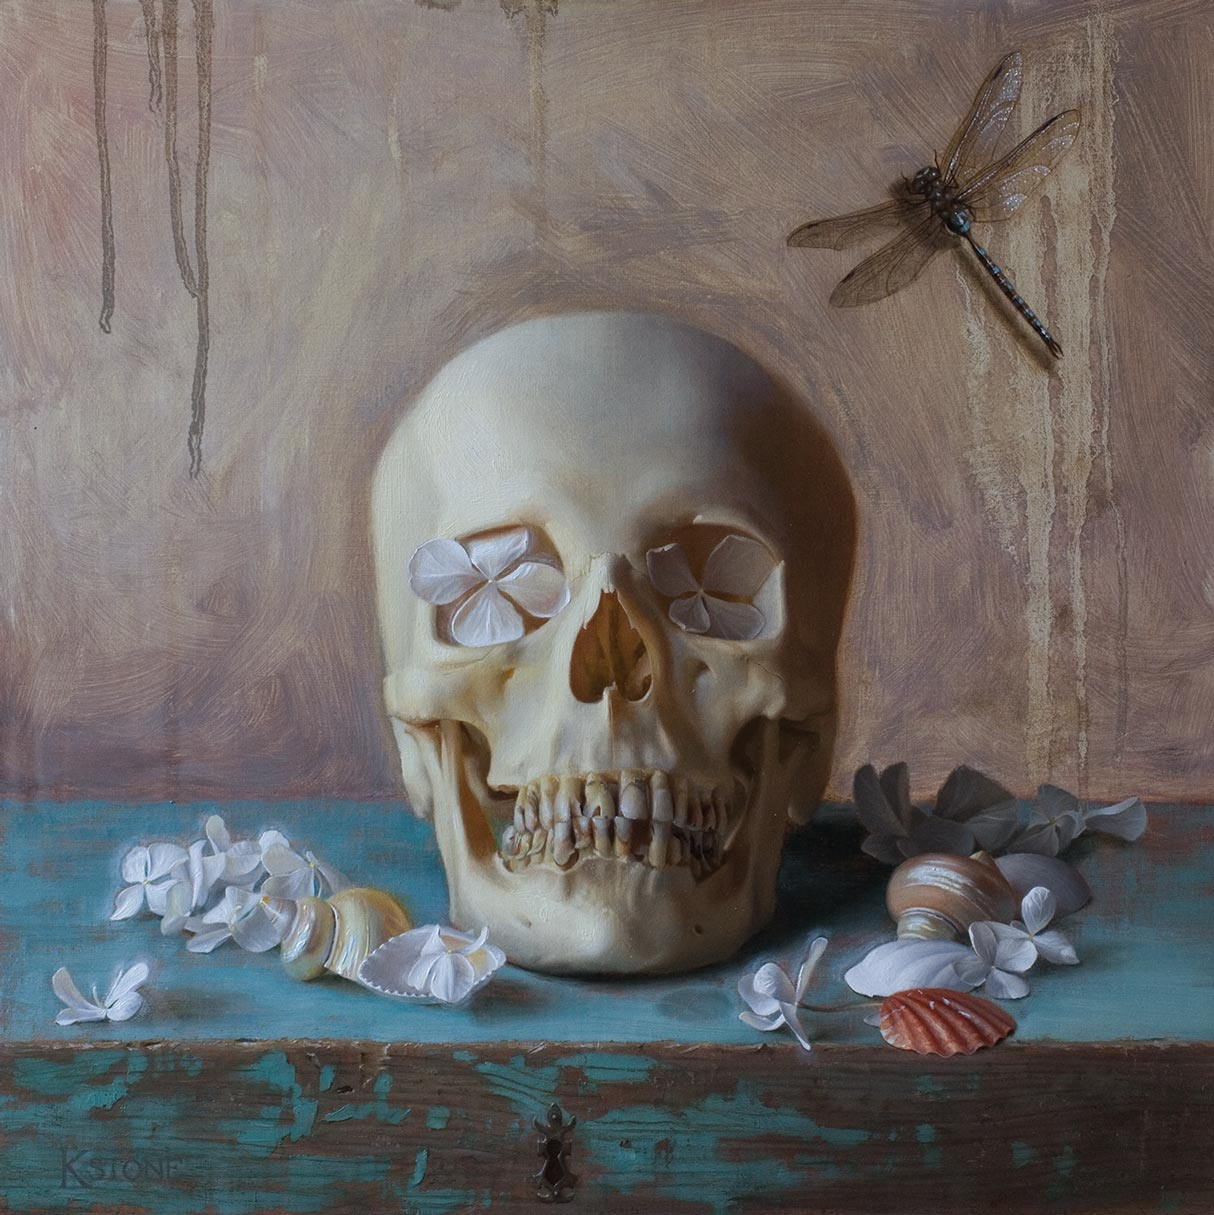 Vanitas, Katherine Stone. oil on linen on panel, 2012